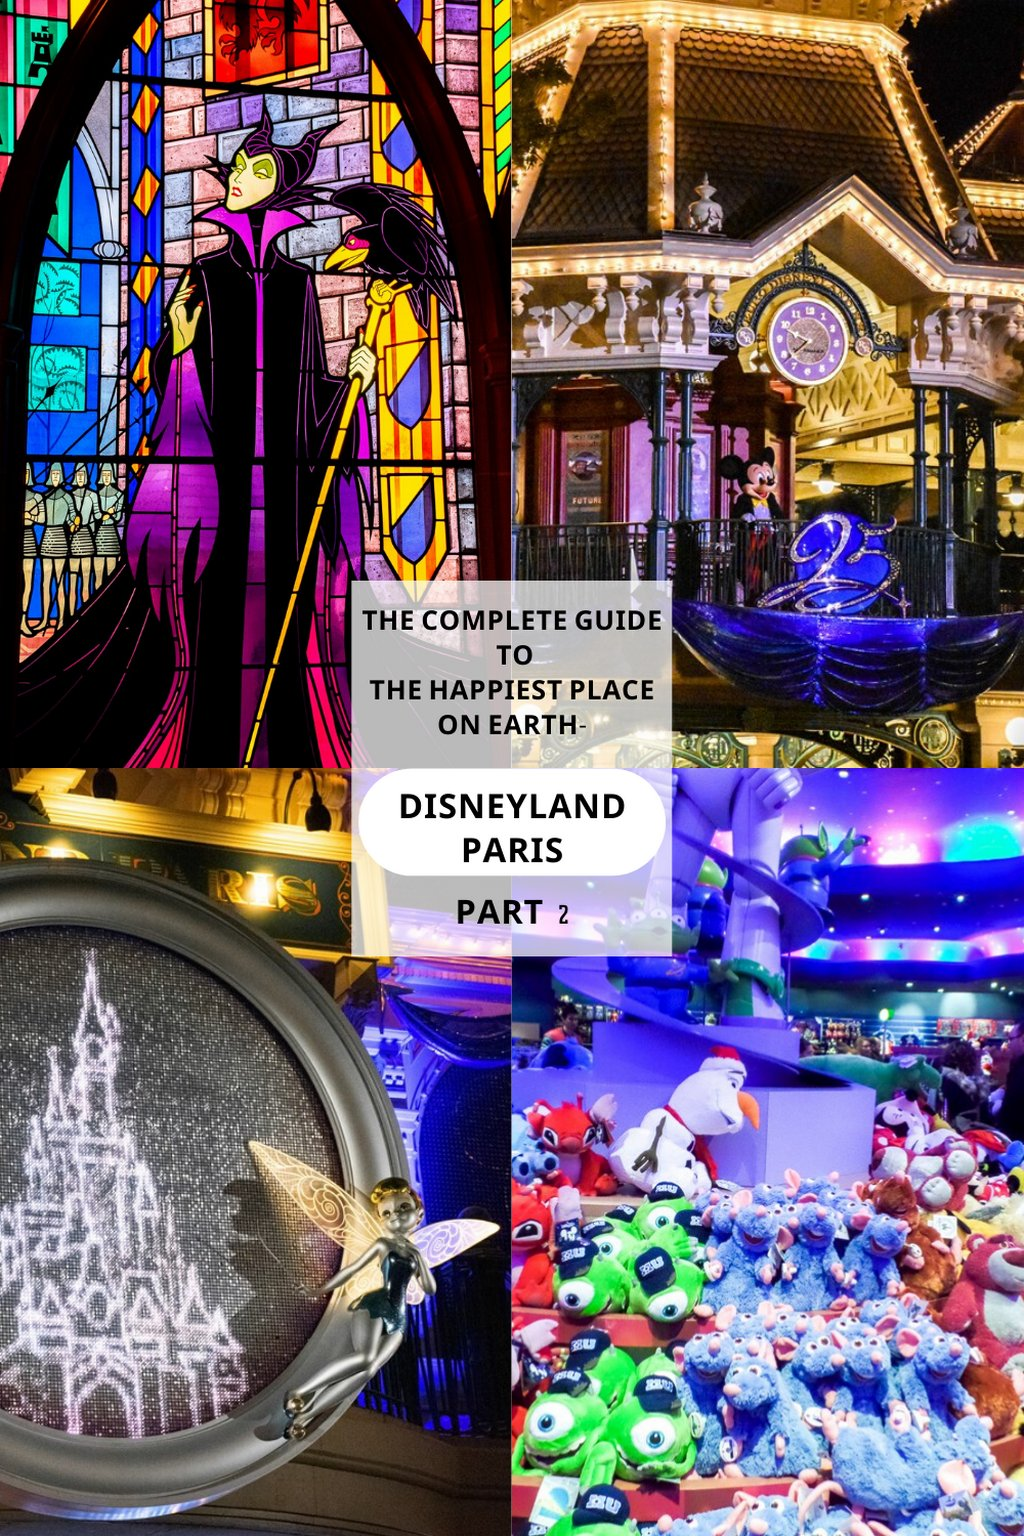 The complete guide to the happiest place on earth – Disneyland Paris! Part 2